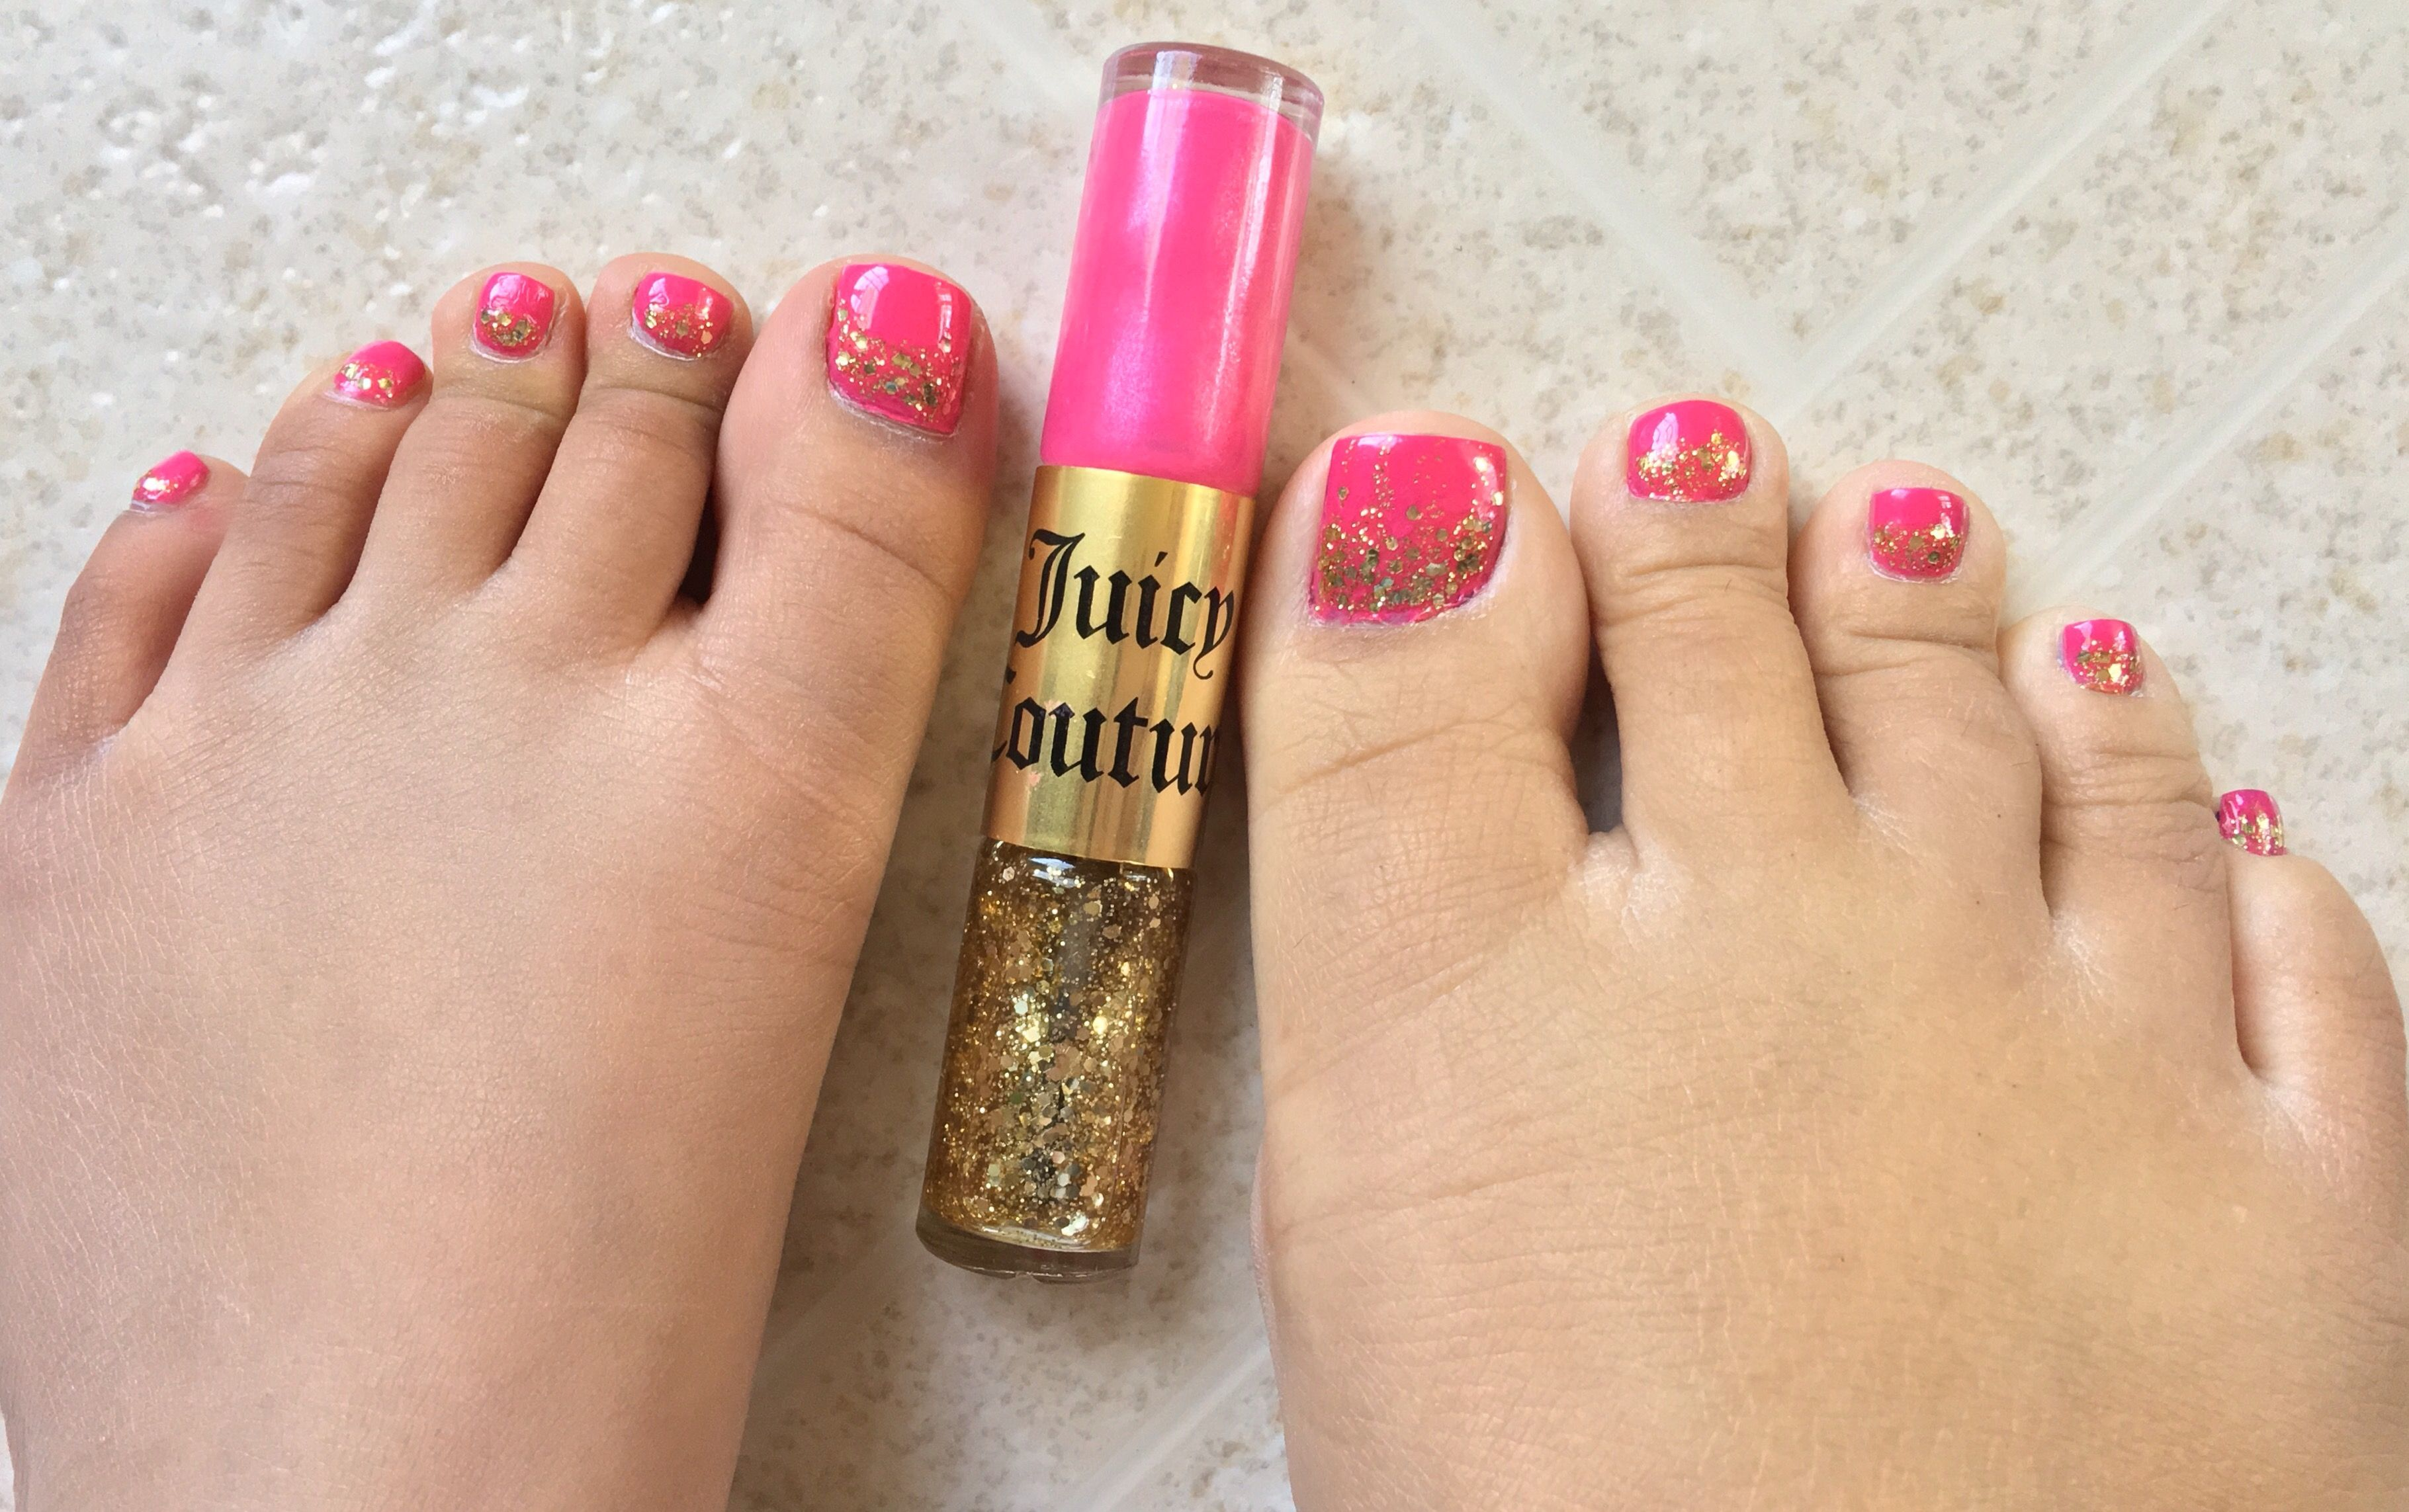 Juicy Couture Nail Lacquer Duo Pink & Gold | Magnified Mani & Pedi ...